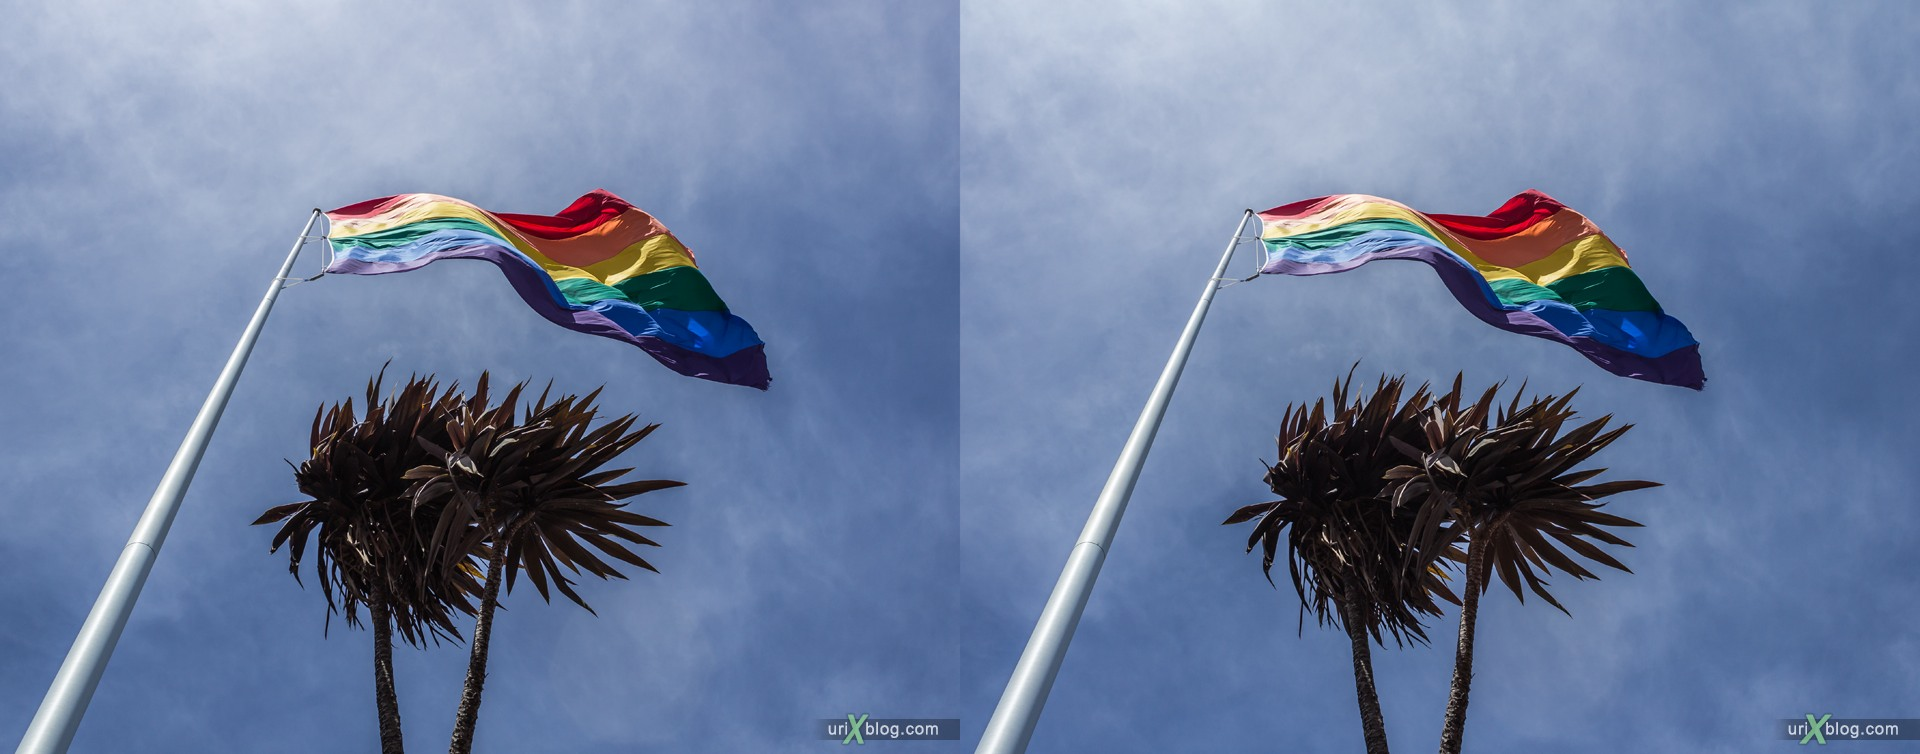 2013, Castro rainbow flag, San Francisco, USA, 3D, stereo pair, cross-eyed, crossview, cross view stereo pair, stereoscopic